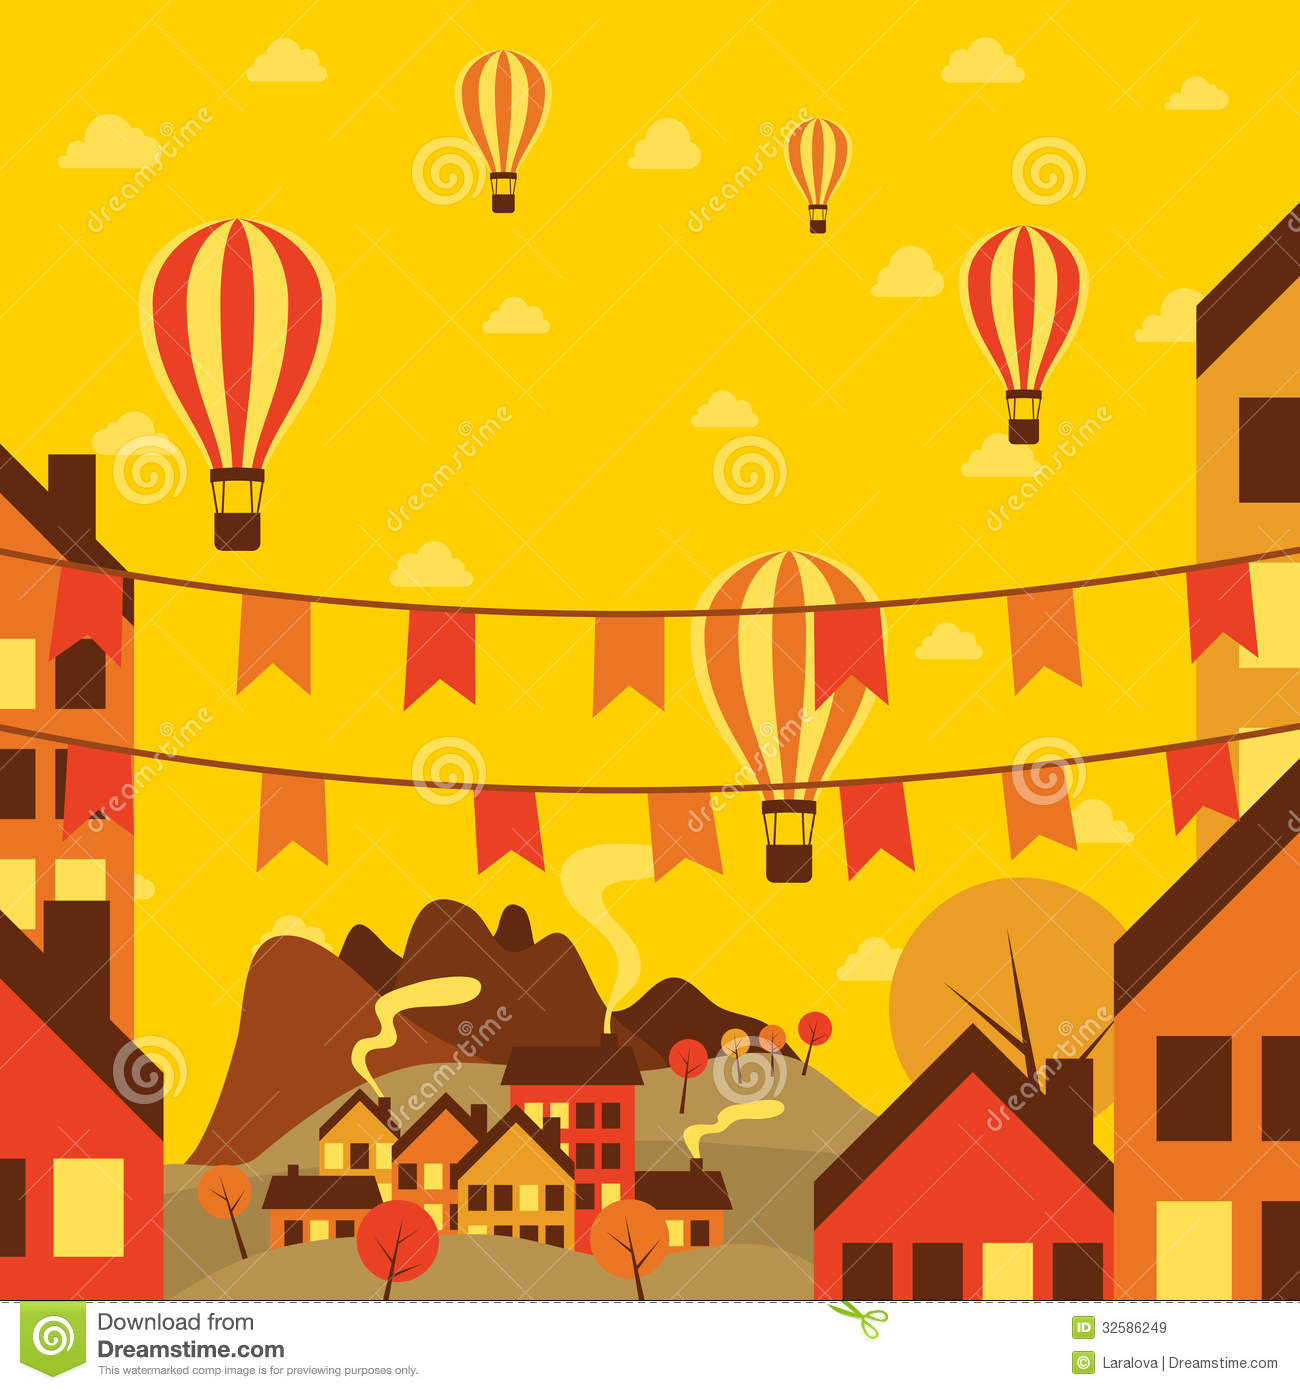 Town Landscape Vector Illustration: Autumn Small Town With Air Balloons Royalty Free Stock